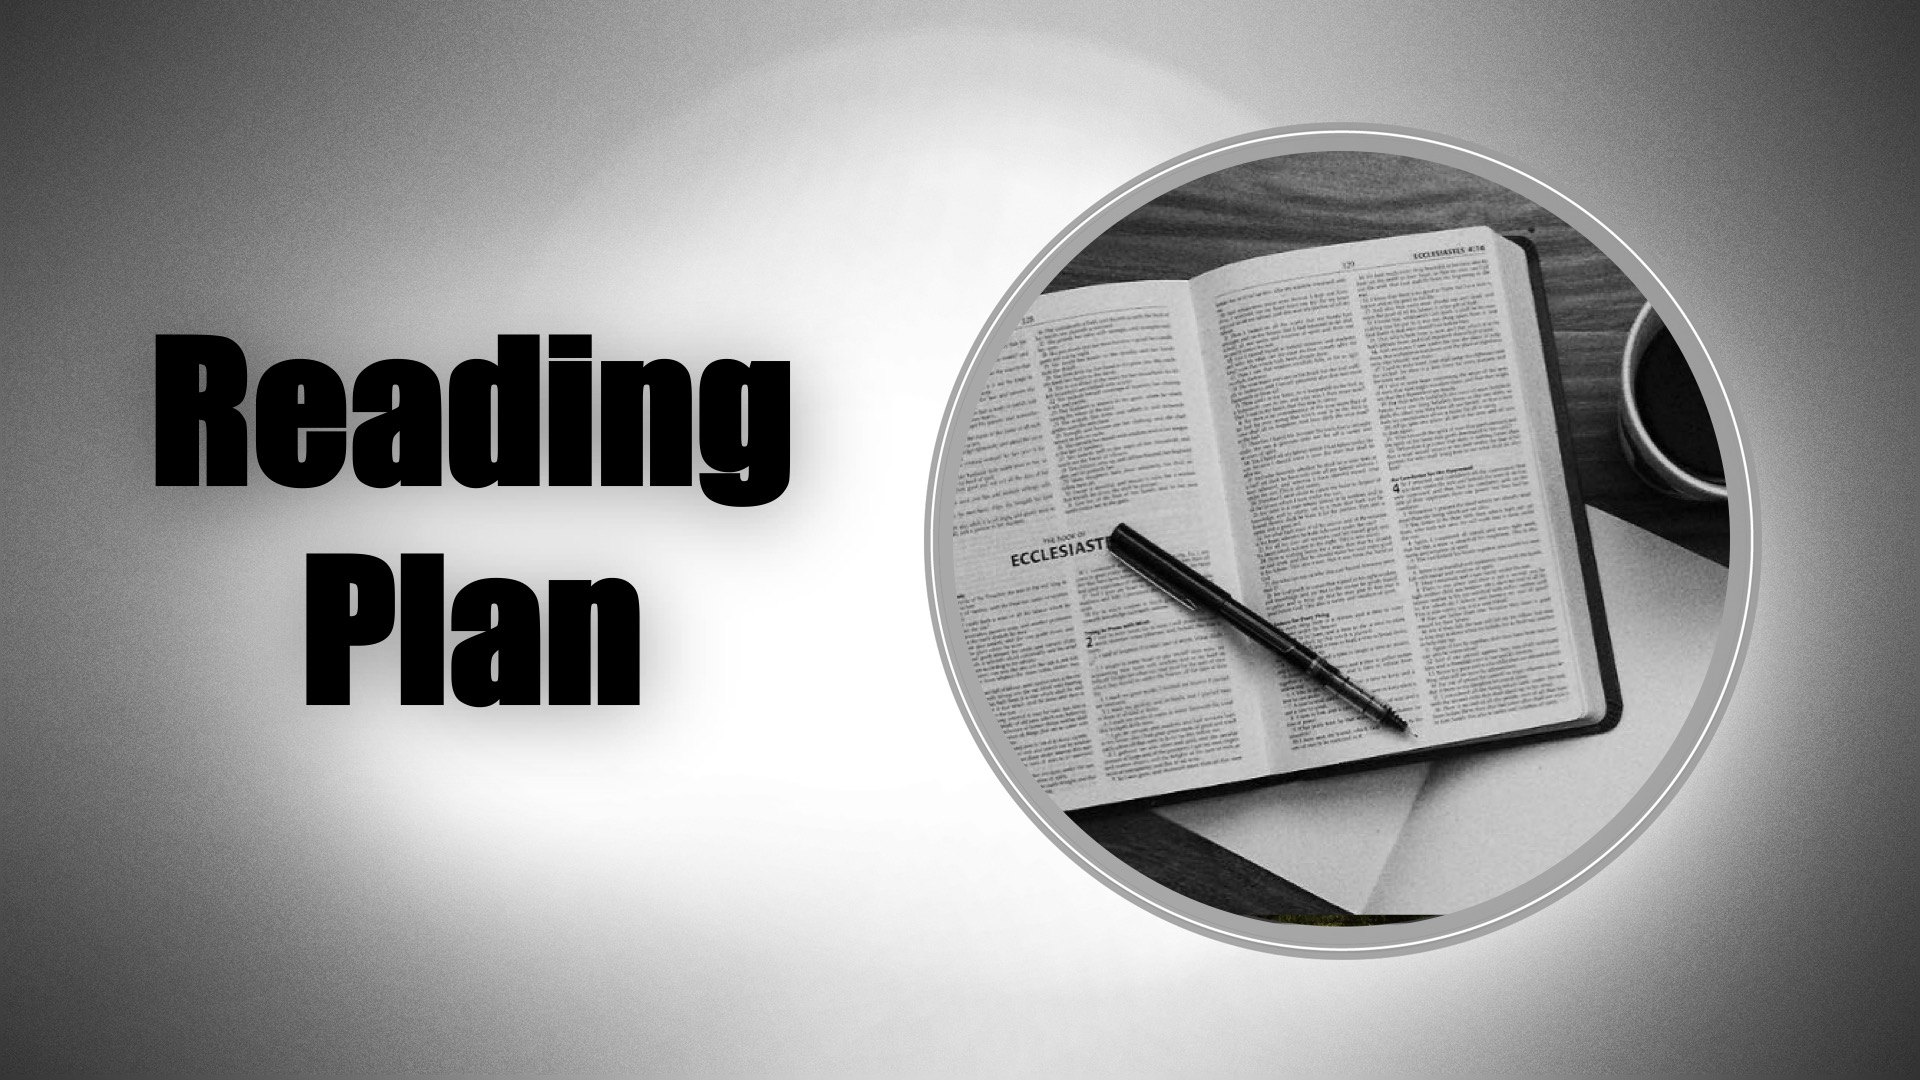 90 Days With Jesus-readingplan